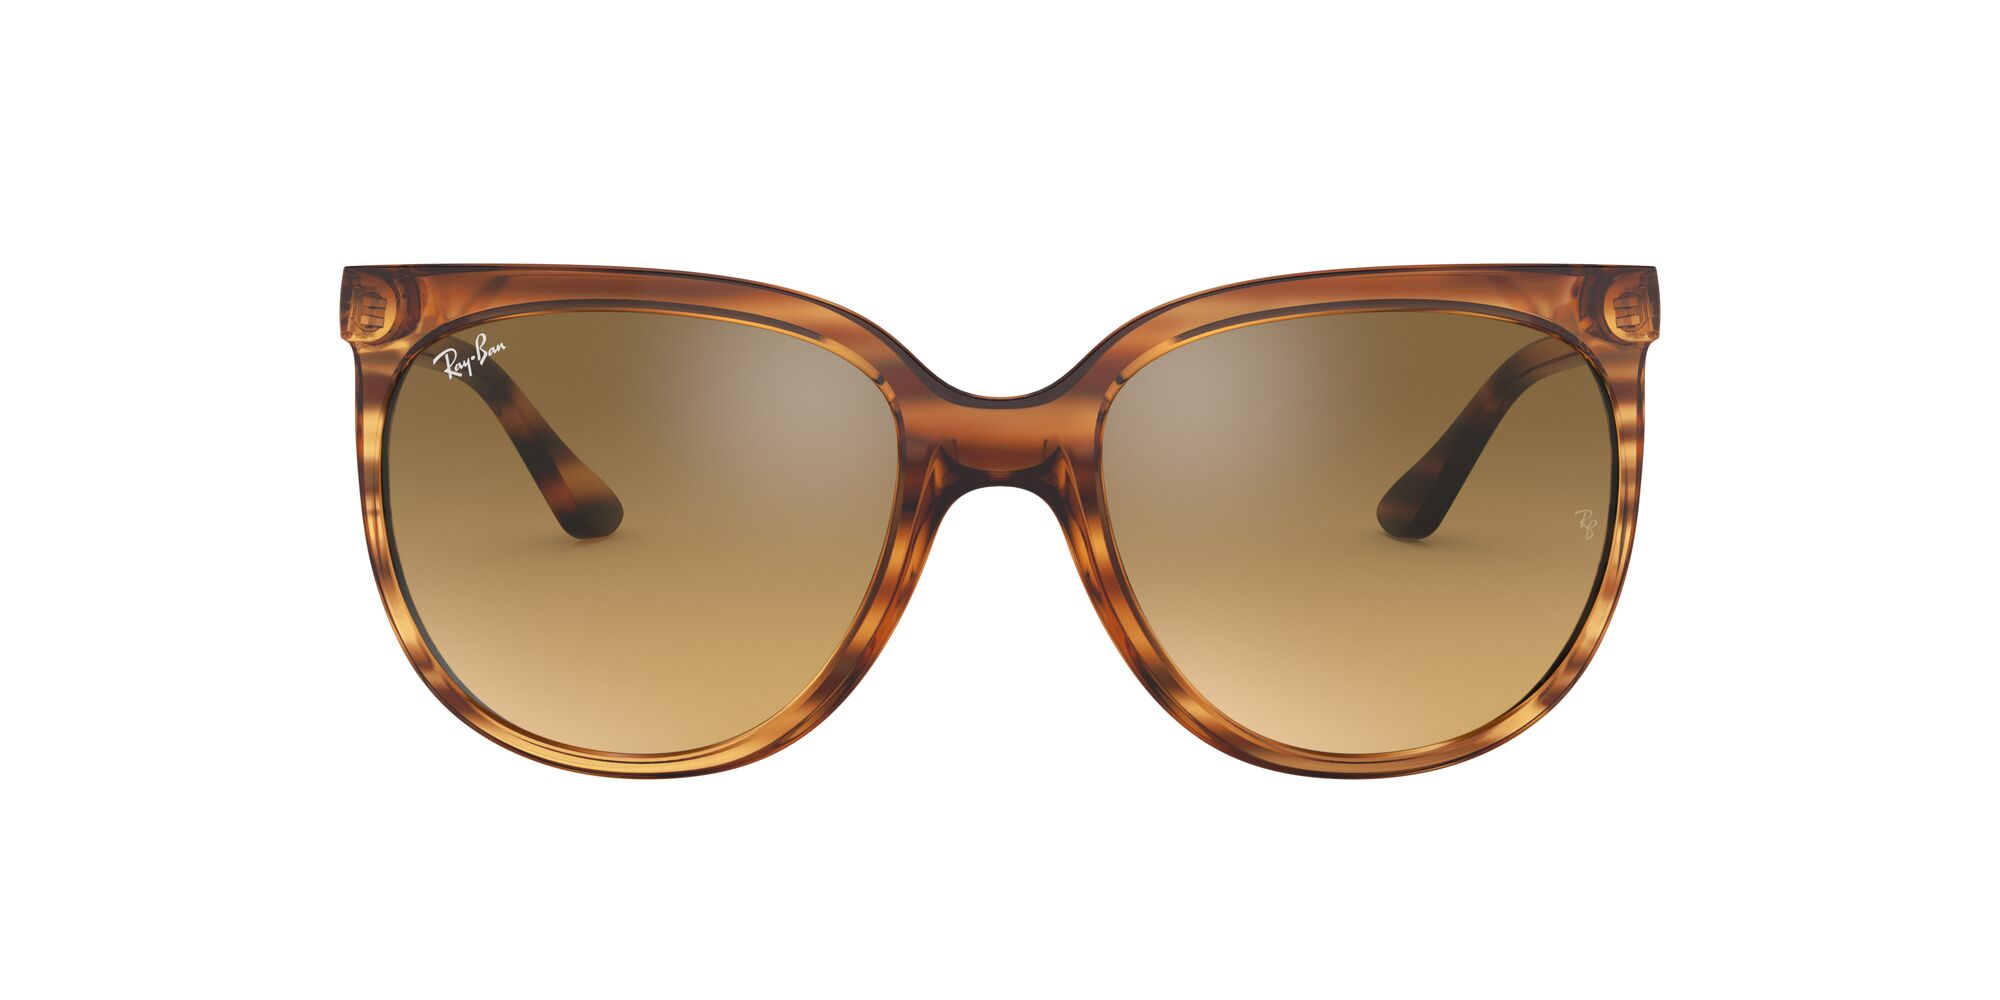 Front Ray-Ban Ray-Ban 0RB4126 820/3K 55/19 Rood, Bruin/Zilver